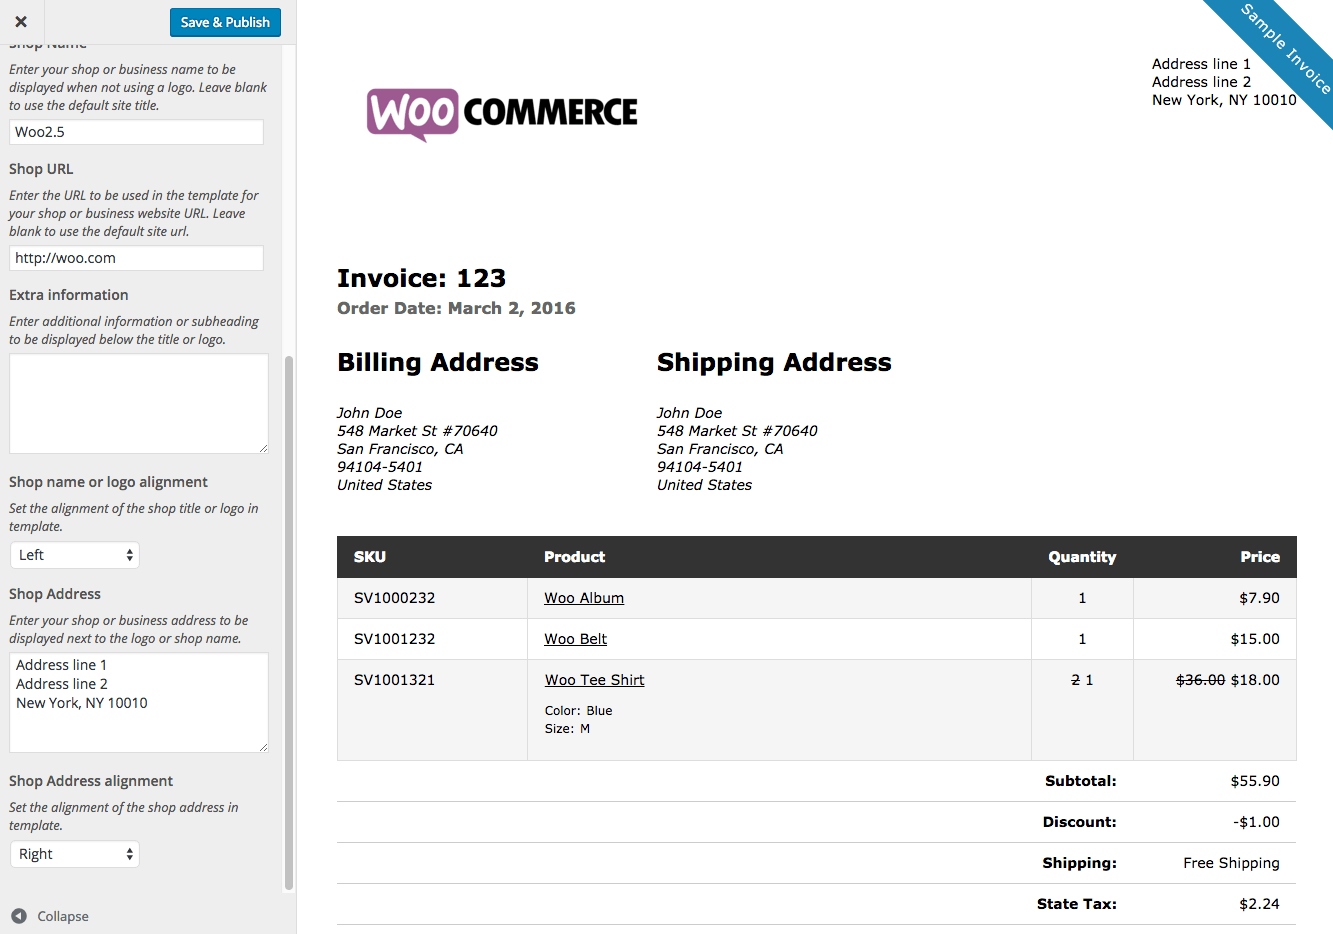 Hius  Nice Woocommerce Print Invoices Amp Packing Lists  Woocommerce Docs With Extraordinary Woocommerce Print Invoices  Packing Lists Customizer With Nice Using Evernote For Receipts Also Post Office Certified Mail Return Receipt In Addition Proof Of Purchase Without Receipt And Money Order Receipts As Well As Personal Receipts Additionally Rent Security Deposit Receipt From Docswoocommercecom With Hius  Extraordinary Woocommerce Print Invoices Amp Packing Lists  Woocommerce Docs With Nice Woocommerce Print Invoices  Packing Lists Customizer And Nice Using Evernote For Receipts Also Post Office Certified Mail Return Receipt In Addition Proof Of Purchase Without Receipt From Docswoocommercecom